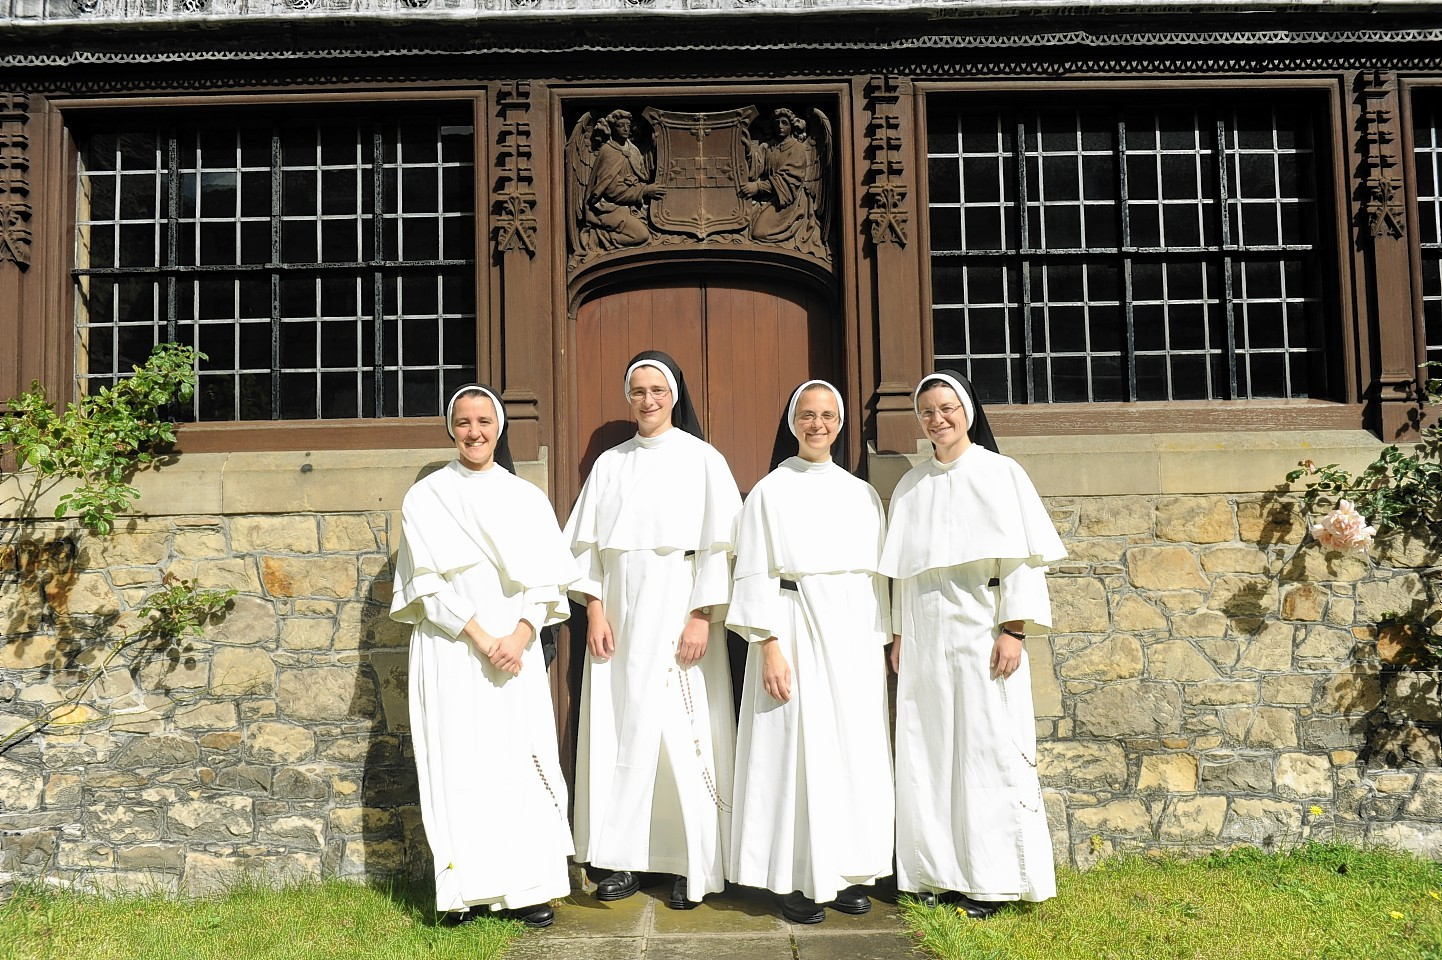 The sisters at Greyfriars Convent in Elgin.